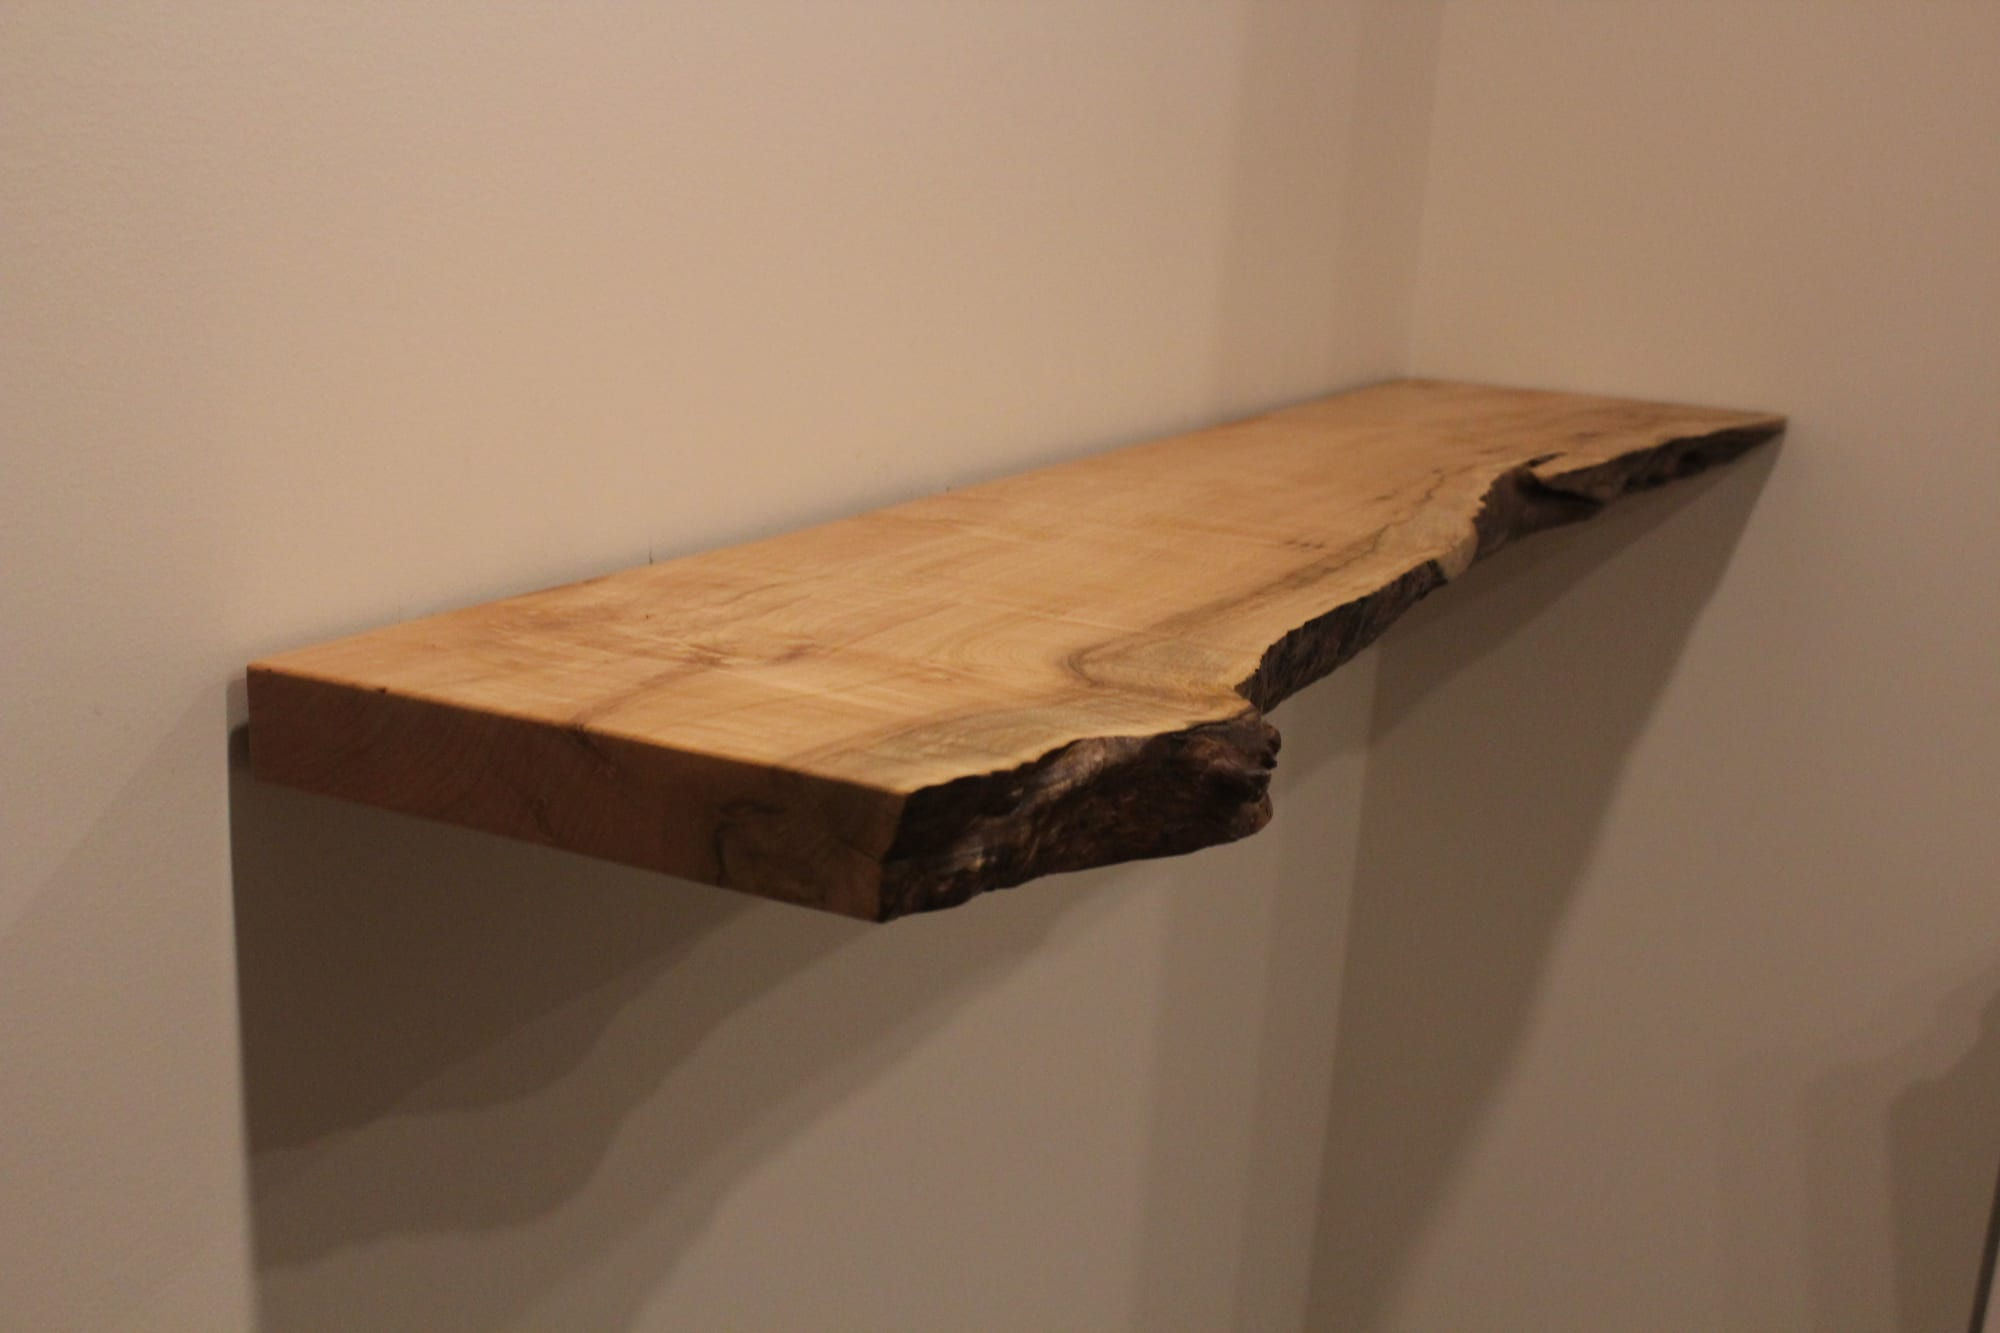 Big Leaf Maple Live Edge Floating Shelf Hardware Bracket By Saw Live Edge Seen At Private Residence Portland Wescover